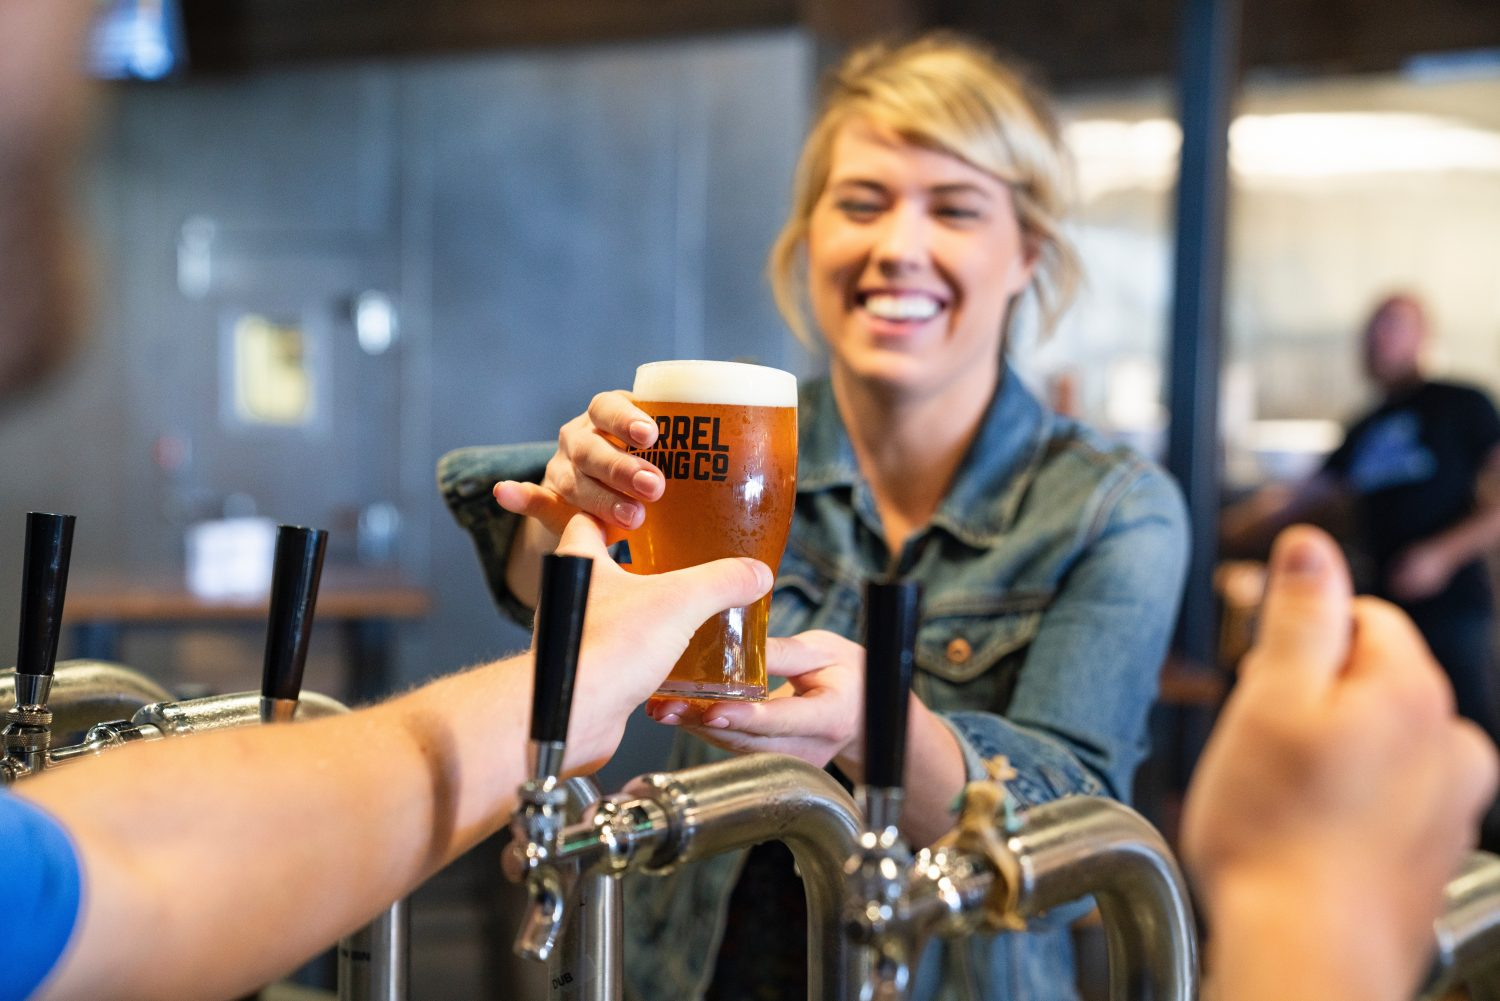 Picture of person handing woman a beer